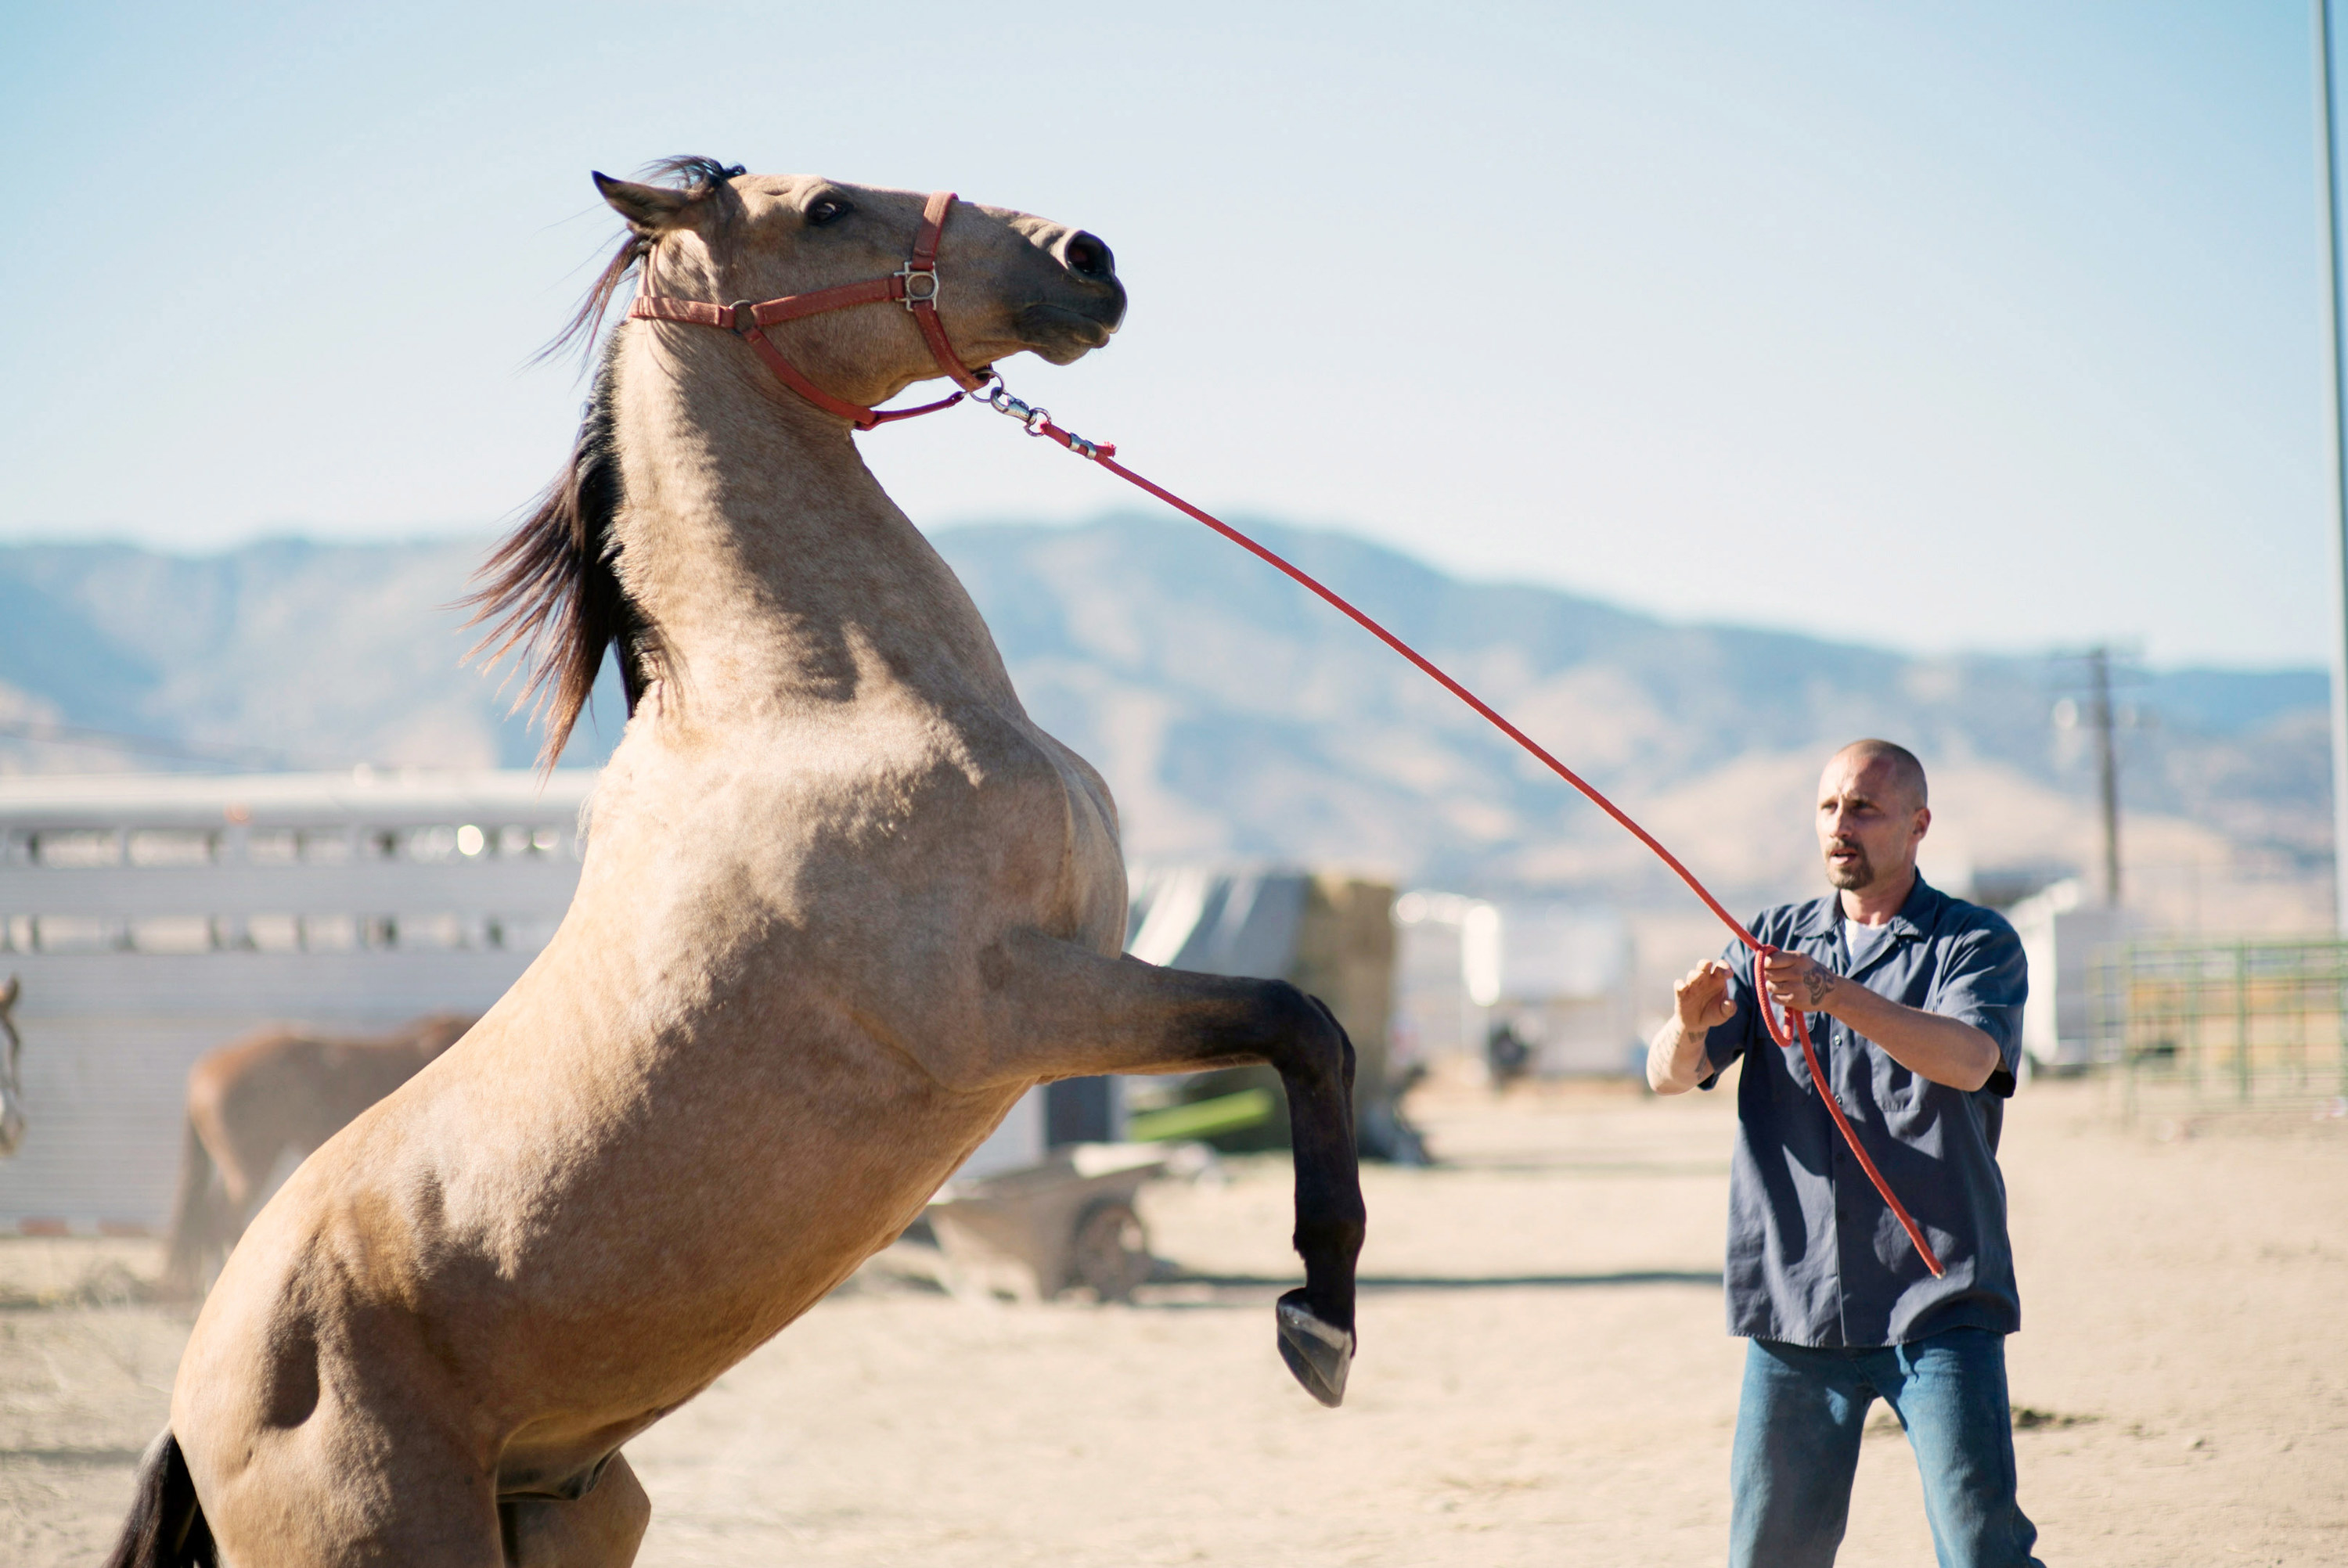 Matthias Schoenaerts attempts to tame a horse in The Mustang